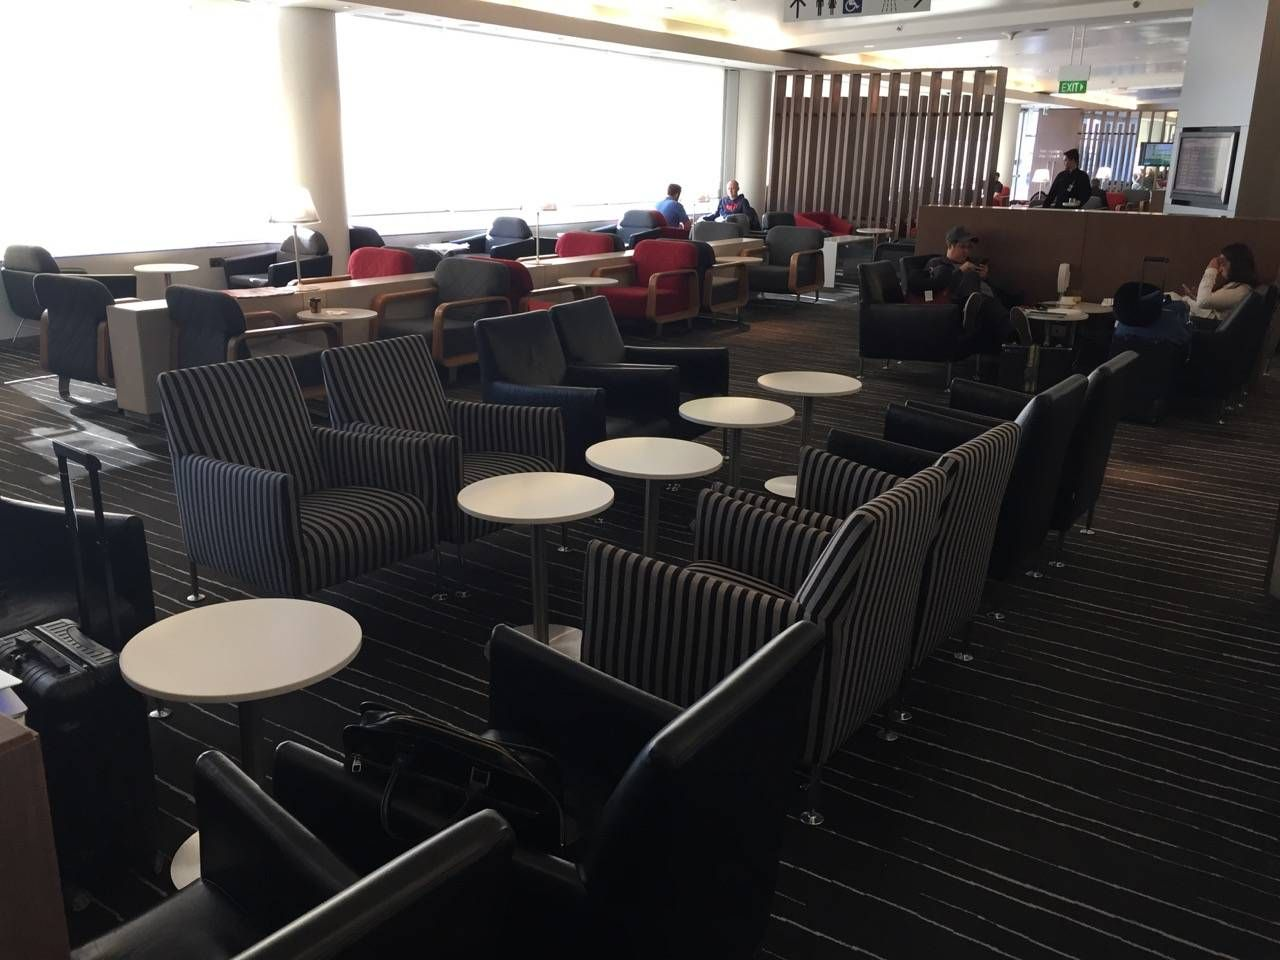 Qantas Business Lounge Sydney -07